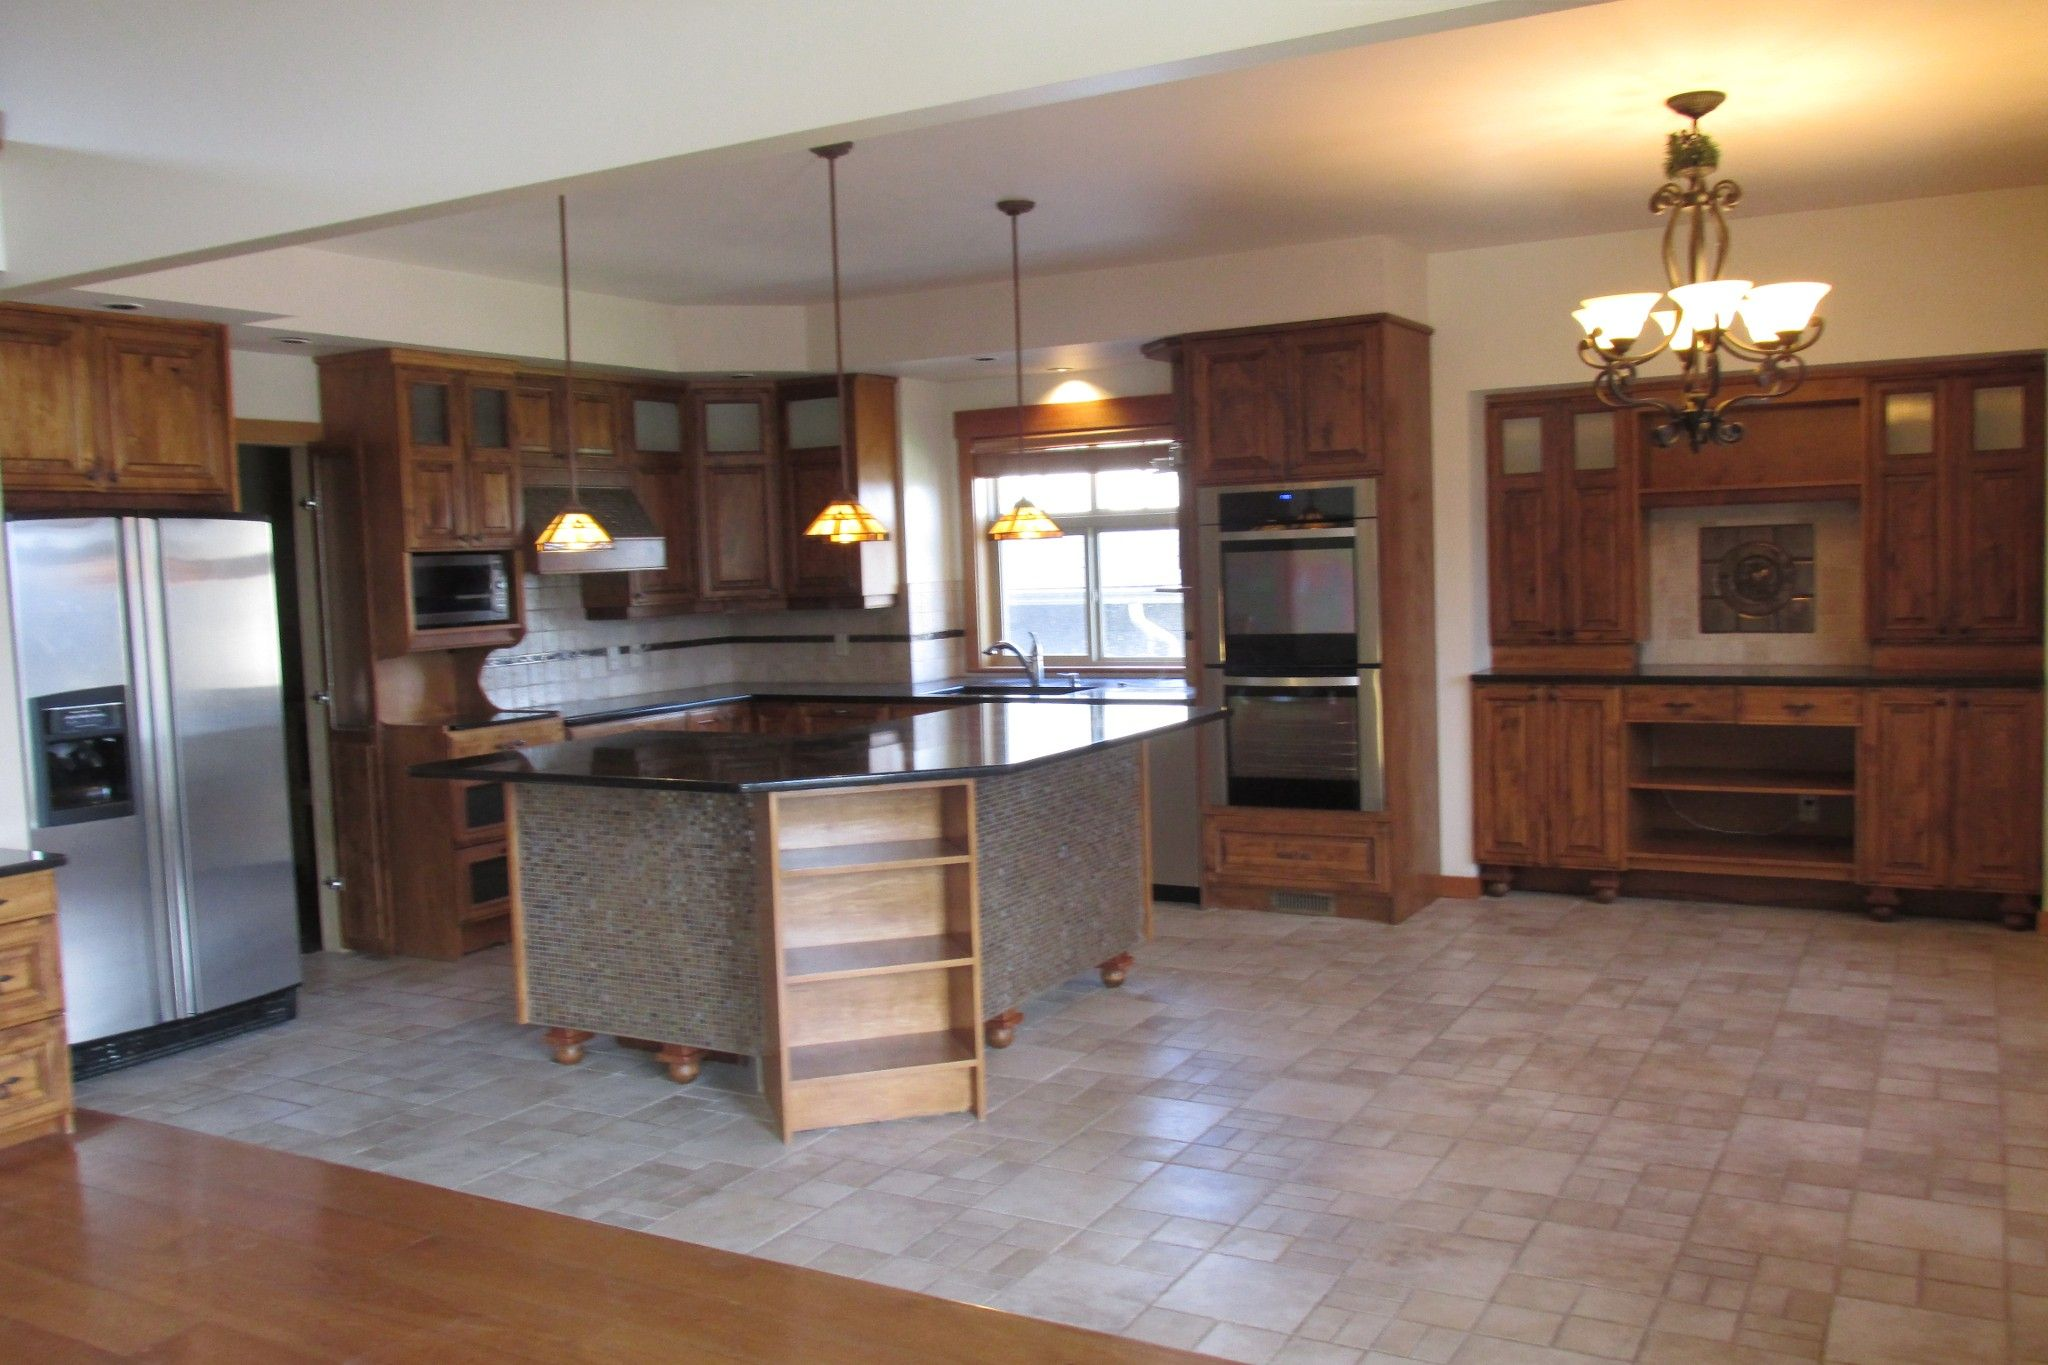 Photo 3: Photos: 1039 Hudson Rd. in West Kelowna: Lakeview Heights House for sale : MLS®# 10181783